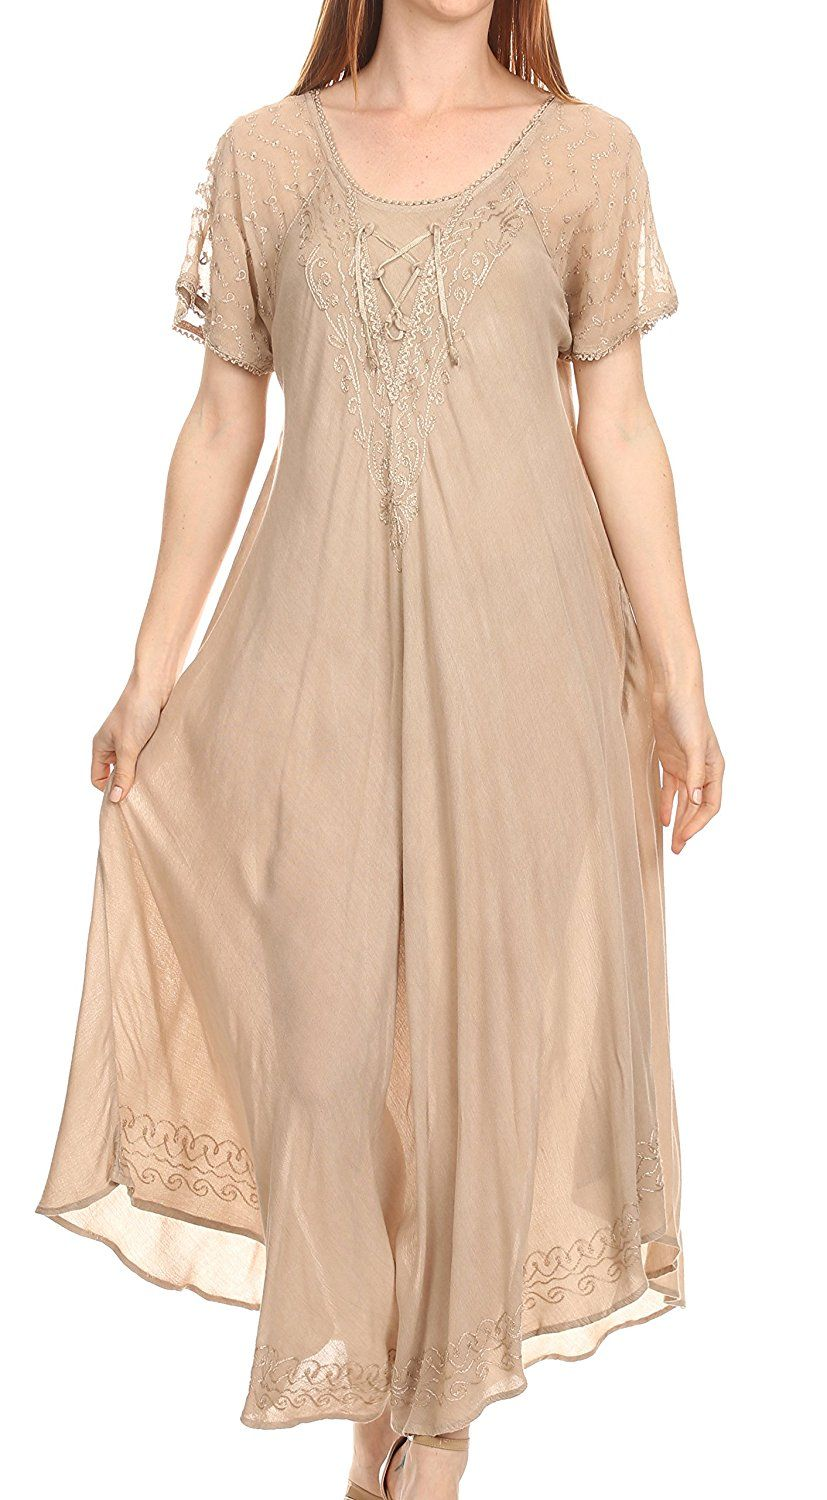 Sakkas shasta lace embroidered cap sleeves long caftan dress cover